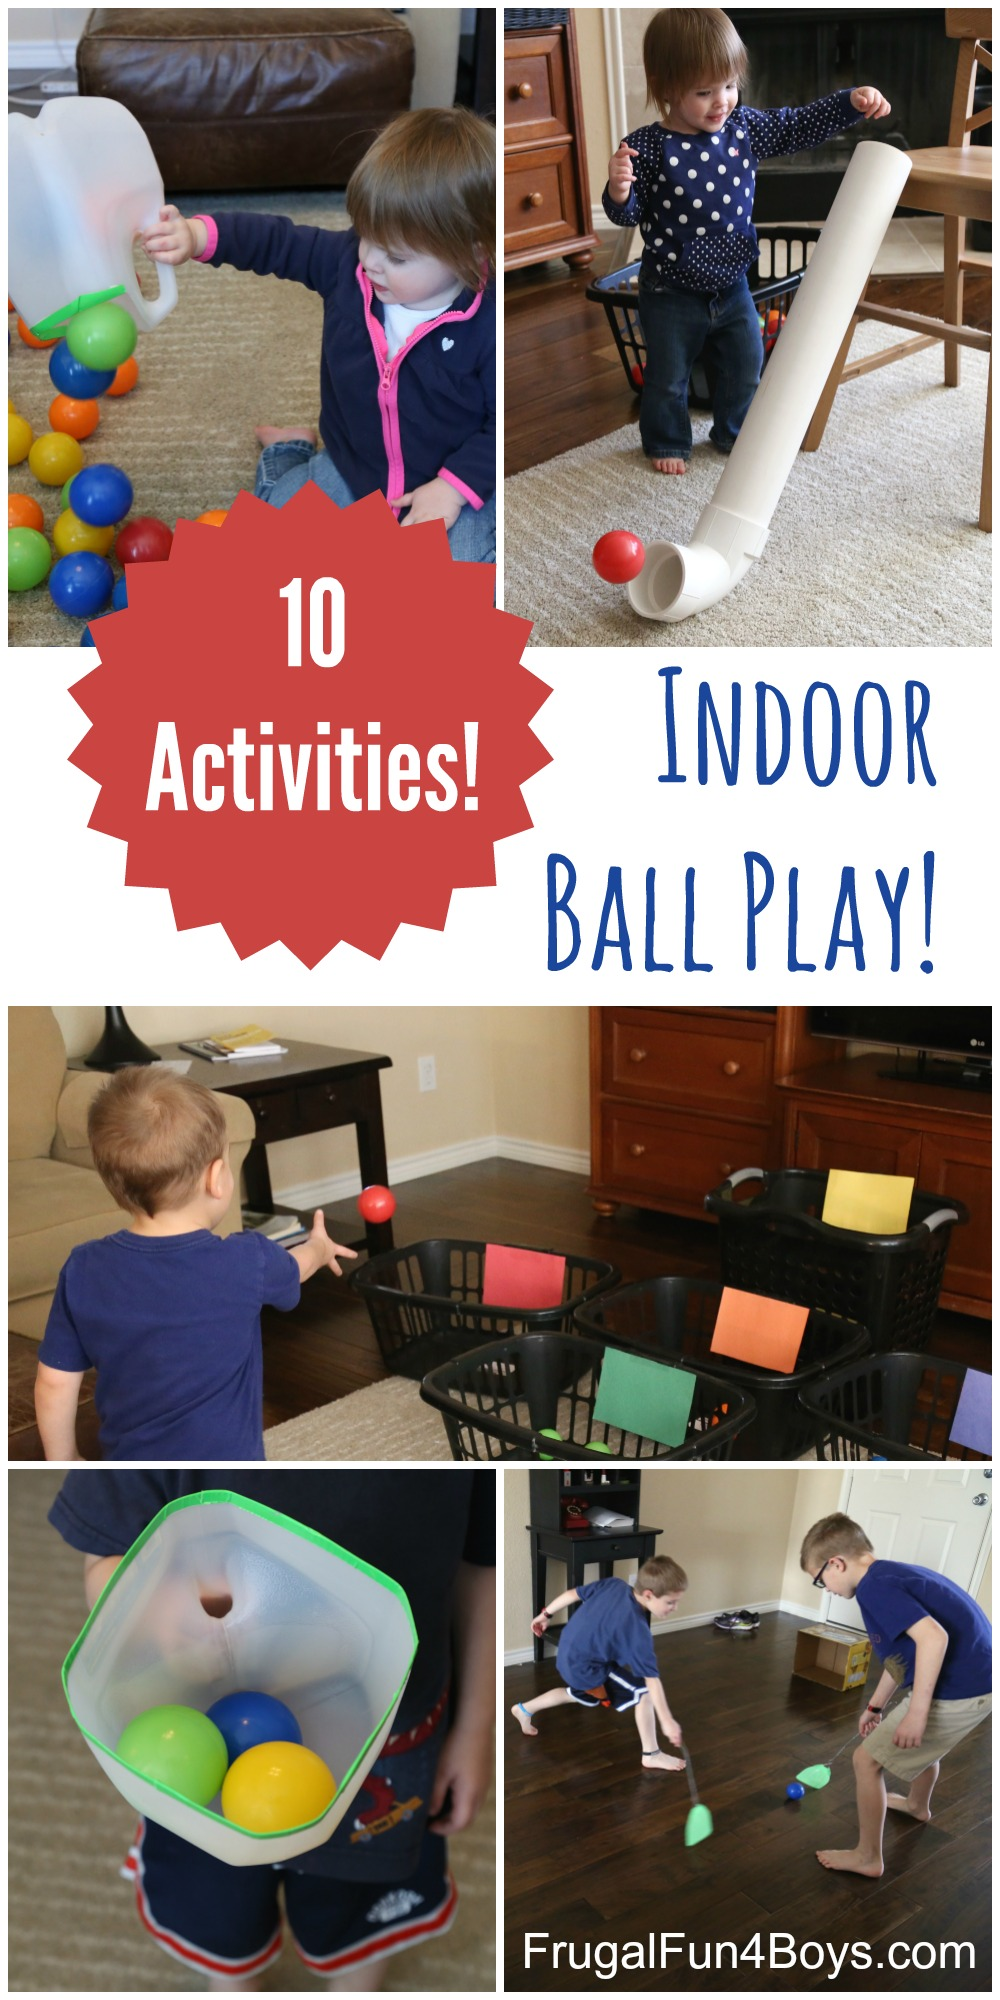 Indoor Ball Play! 10 Active Games for Kids